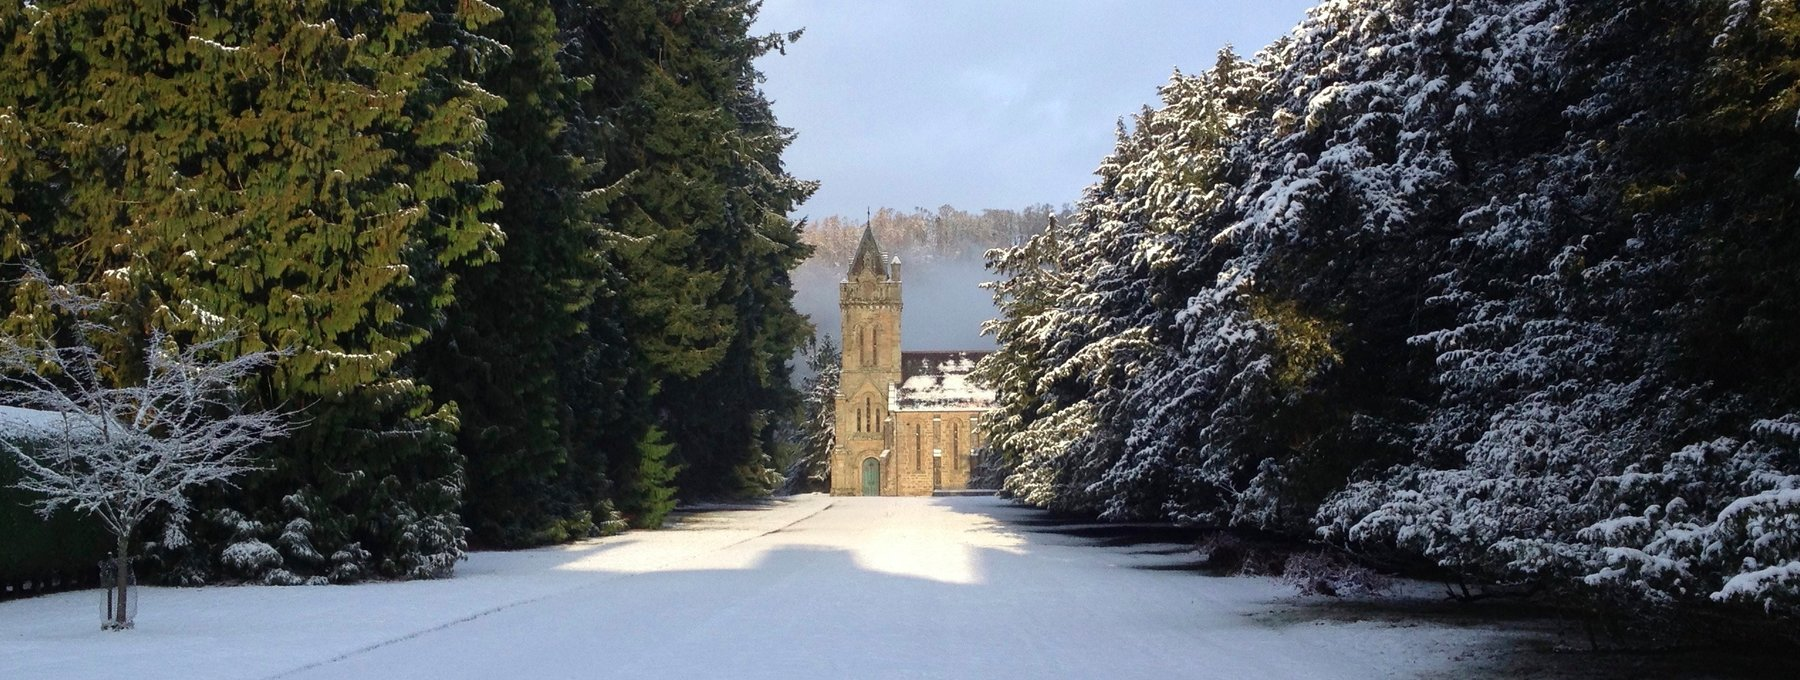 fullsizeoutput_2b8e - The chapel at Murthly Castle makes the perfect setting for a winter wedding. (© Murthly Estate)